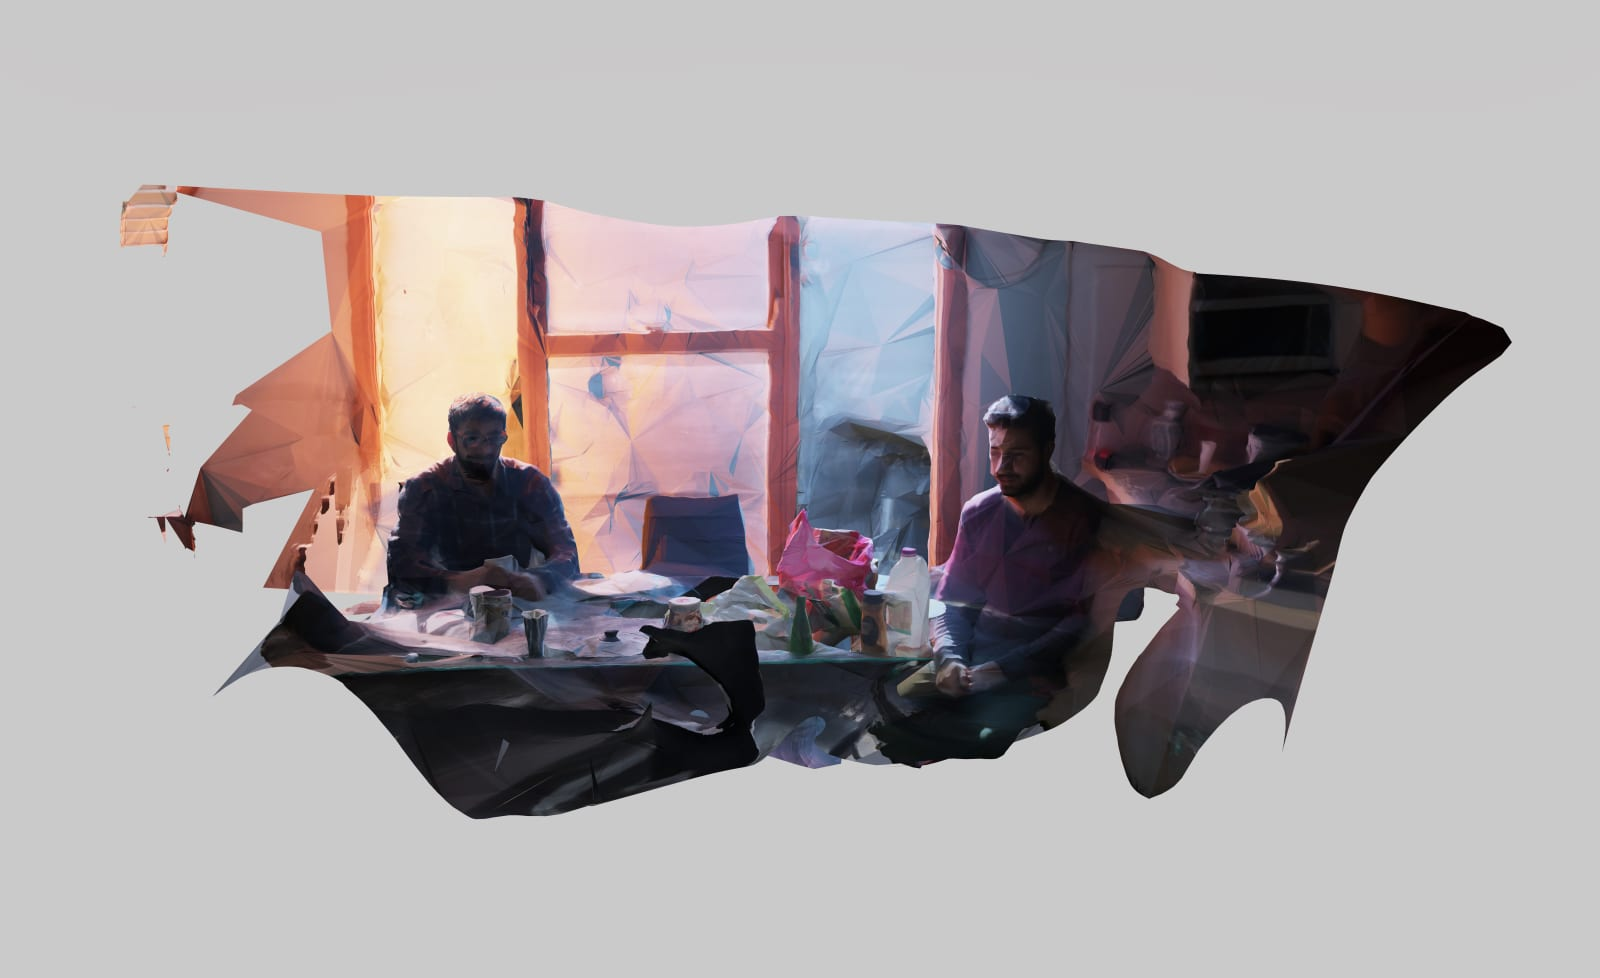 MOONIS AHMAD SHAH Accidentally Miraculous Everyday From That Heaven (Tutors having an extended breakfast on a Wednesday), 2018 Archival prints on archival Epson paper 36 x 60 in. 2 editions ₹ 50,000.00